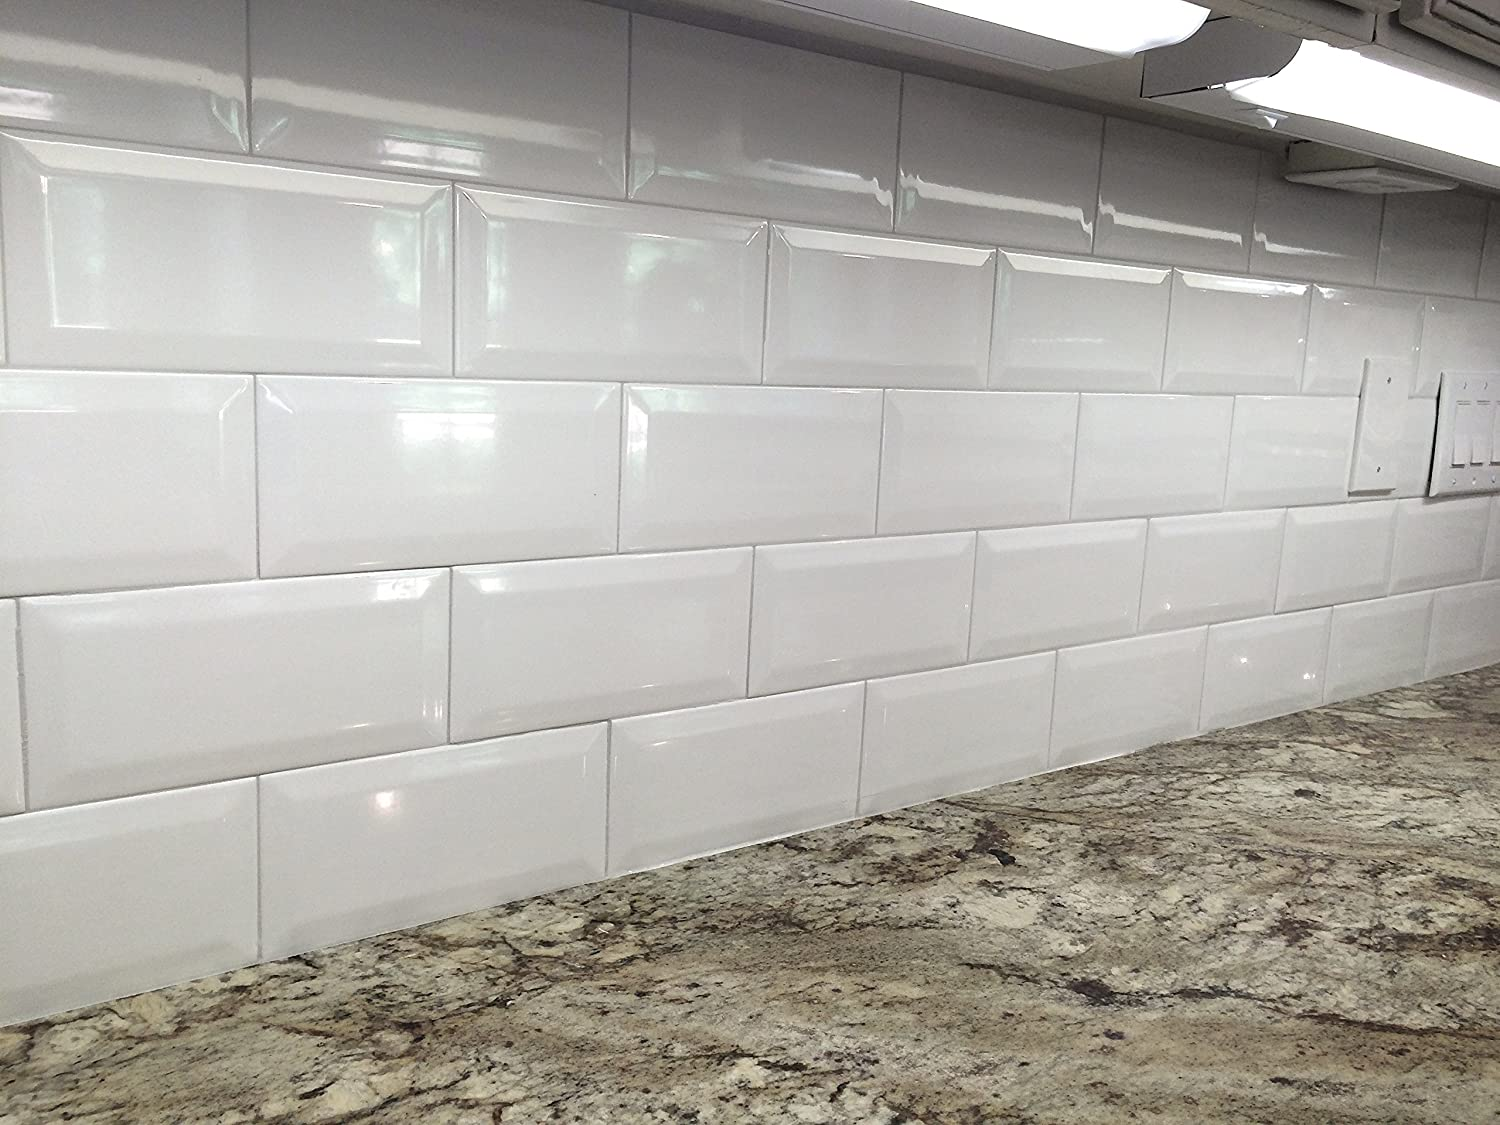 4x8 soft white wide beveled subway ceramic tile backsplashes walls 4x8 soft white wide beveled subway ceramic tile backsplashes walls kitchen shower amazon dailygadgetfo Choice Image